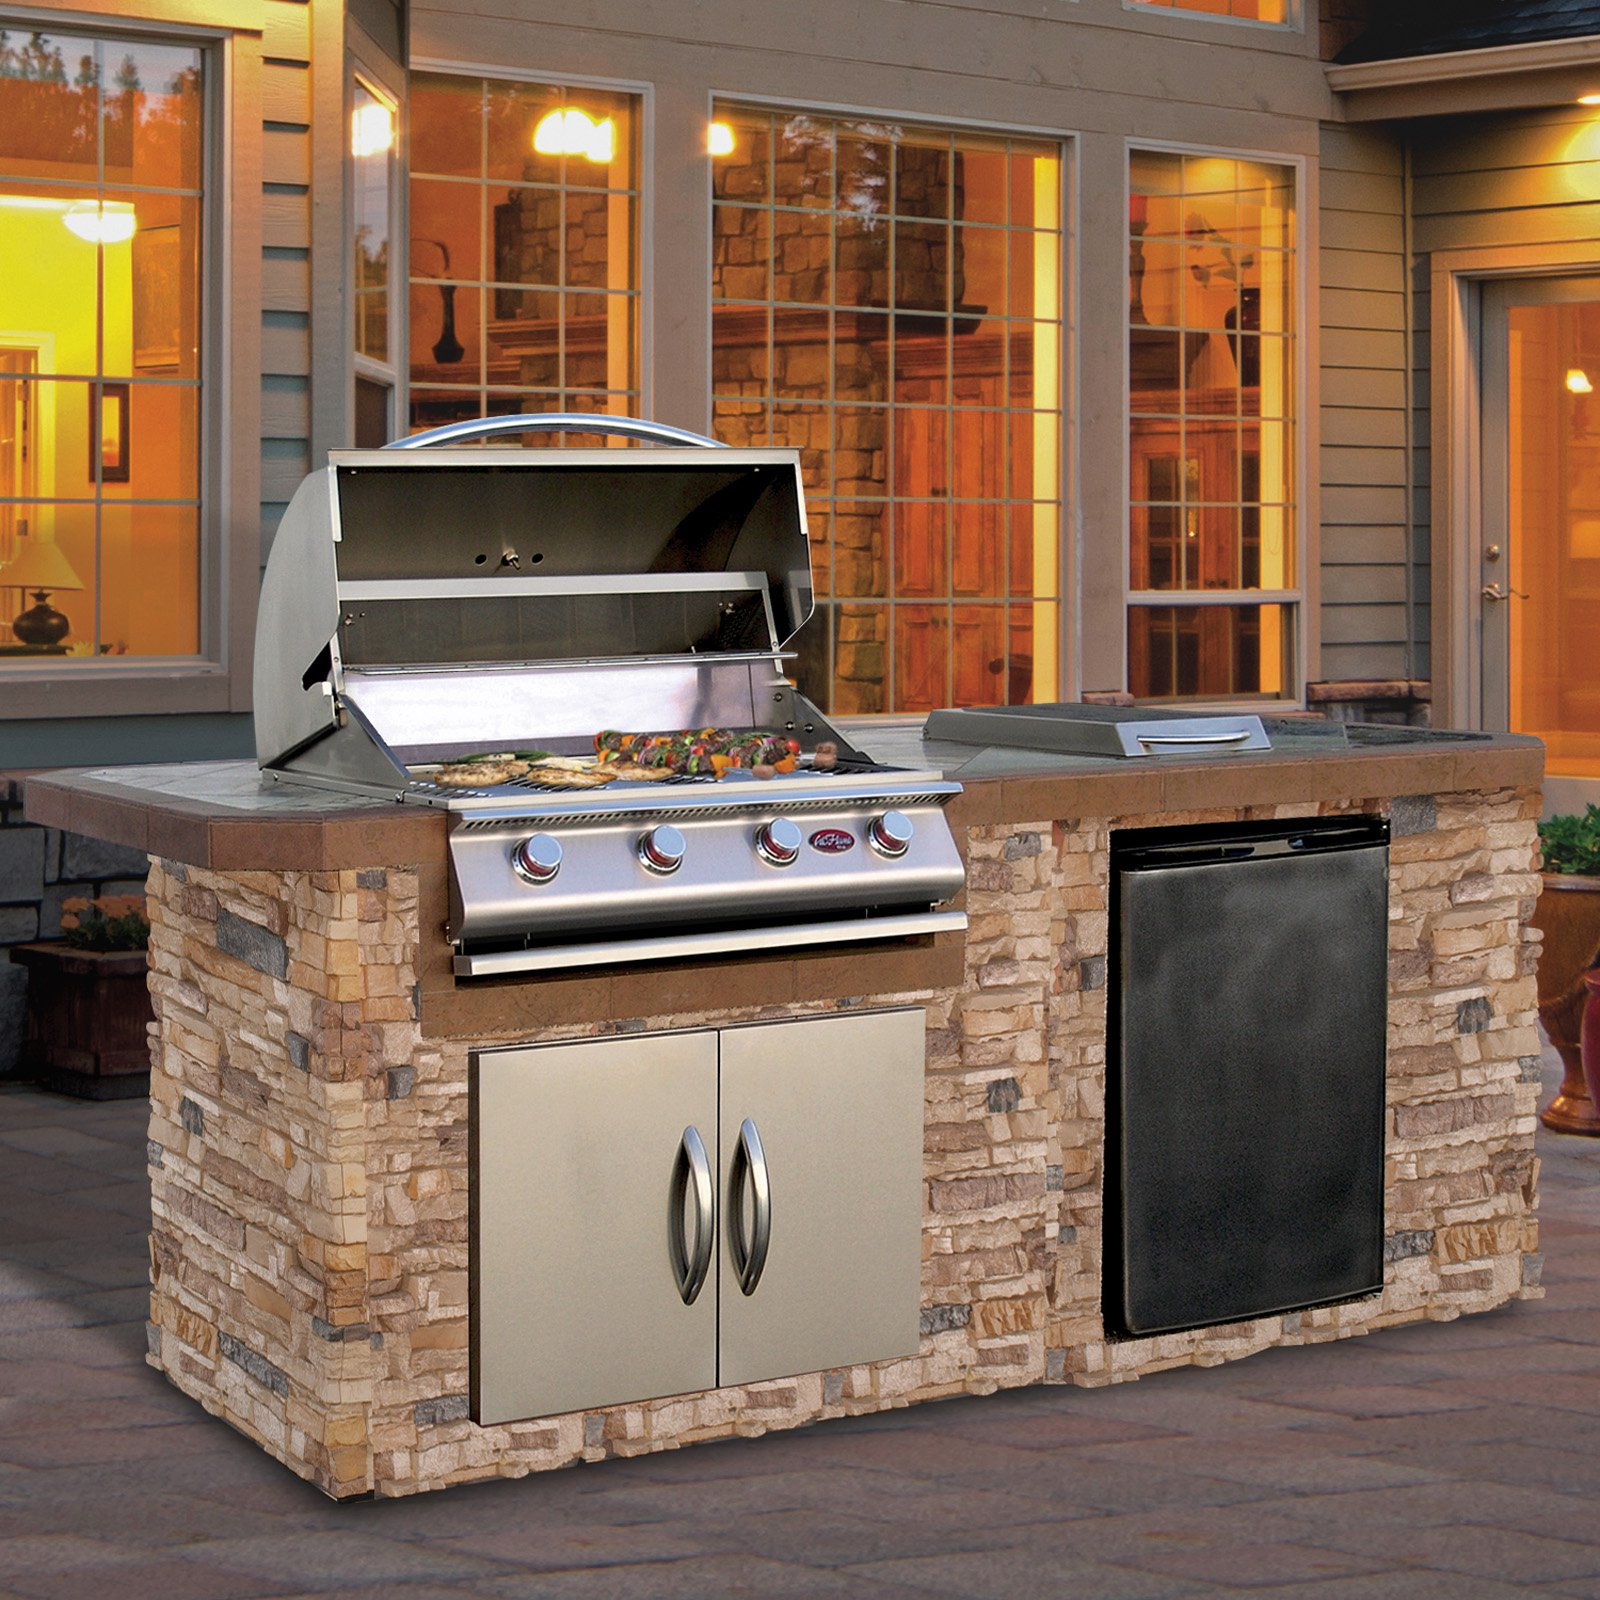 Cal Flame 7 ft. Natural Stone Grill Island With Tile Top And 4 Burner Gas Grill by Overstock